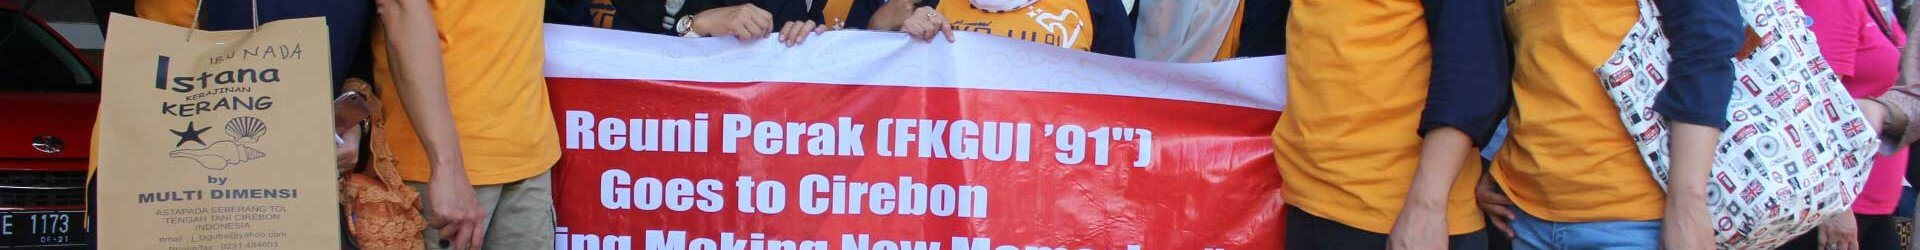 "Best Tour Reuni Perak FKGUI ""91 Goes to Cirebon"